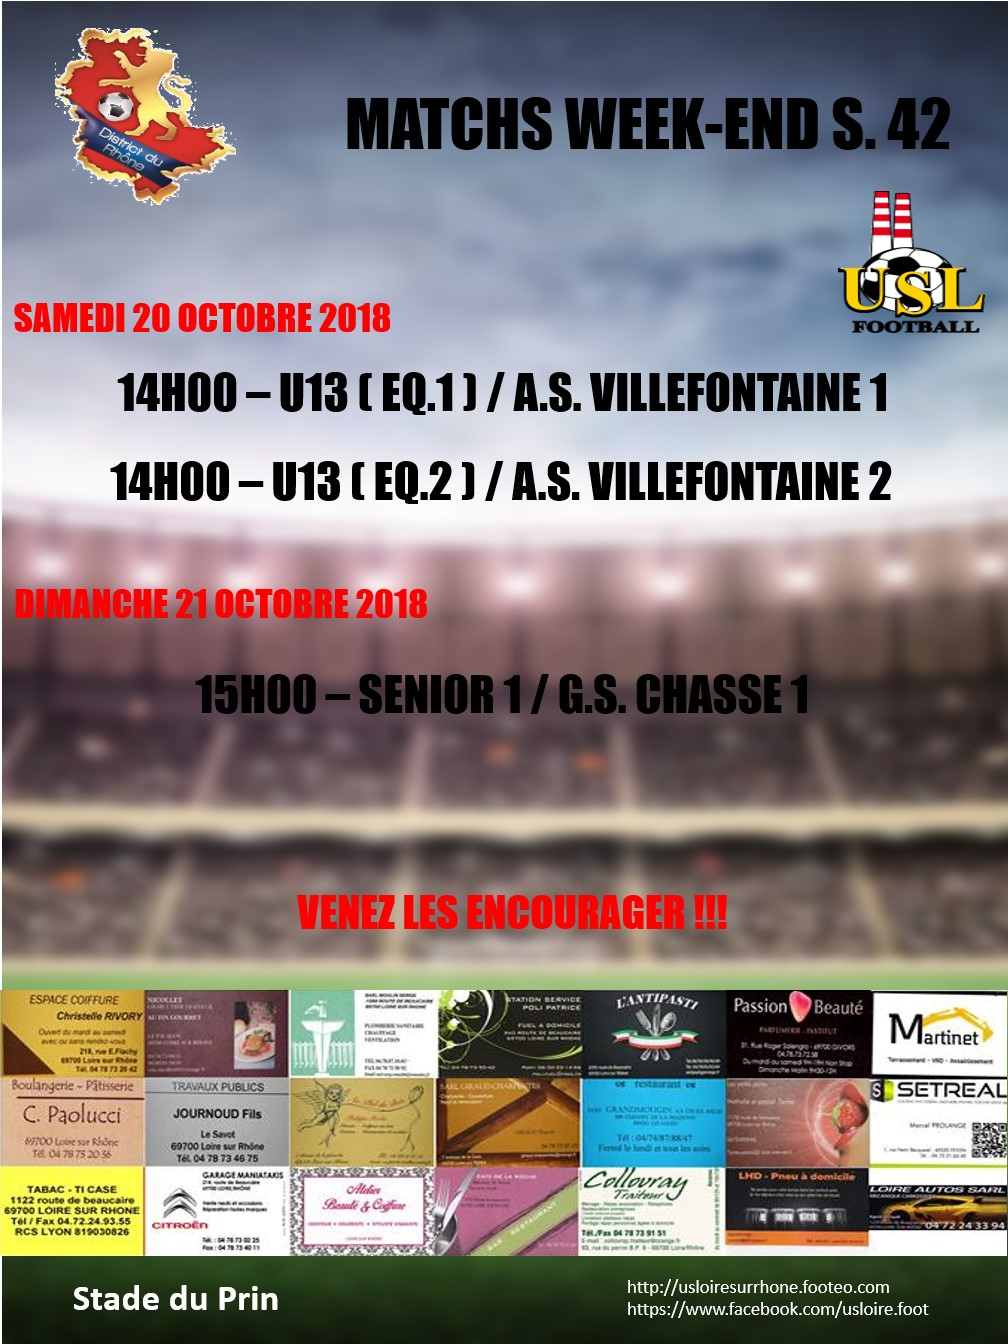 Matchs week-end S42.jpg